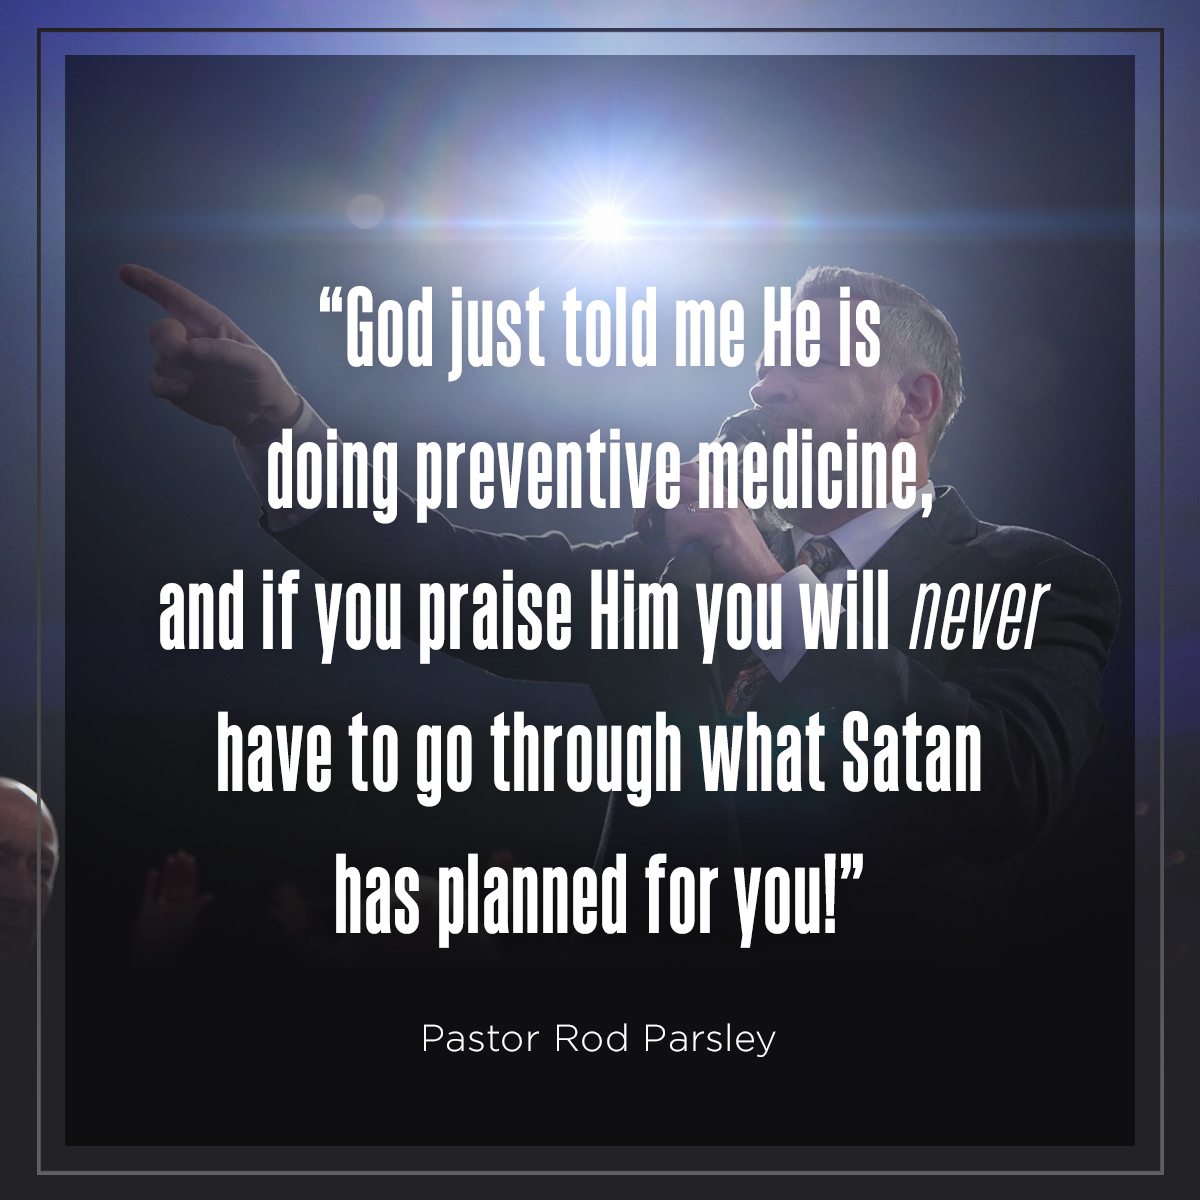 """God just told me He is doing preventive medicine, and if you praise Him you will never have to go through what Satan has planned for you!"" – Pastor Rod Parsley"